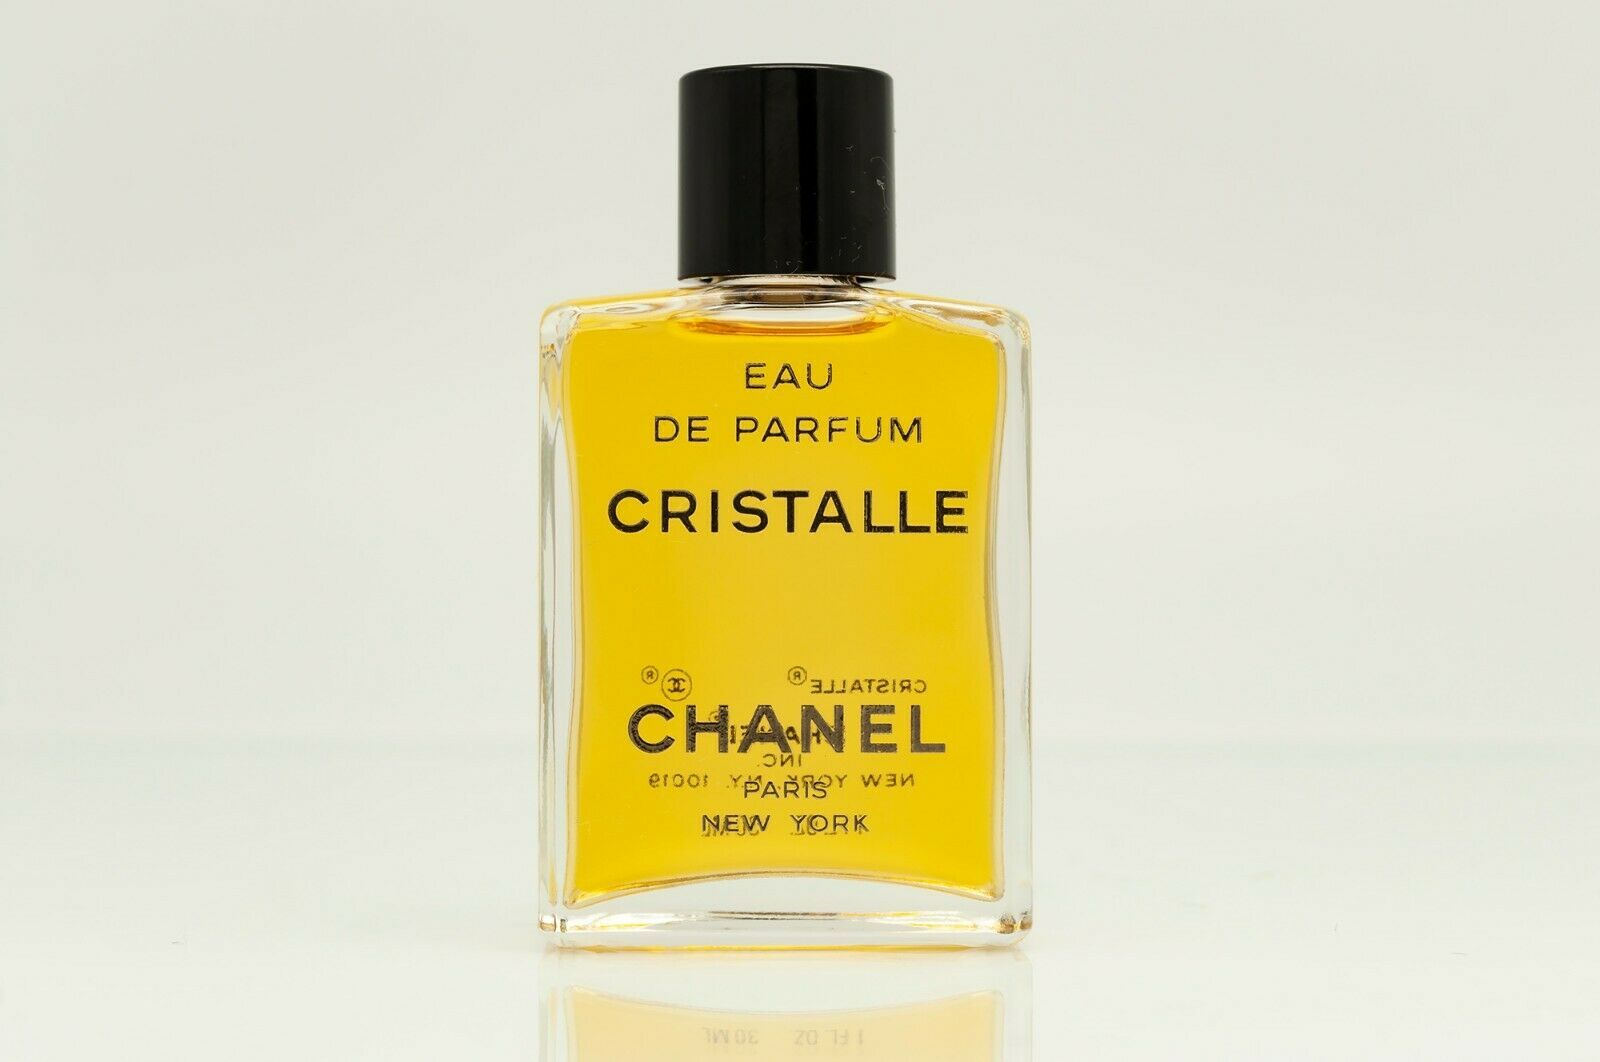 Primary image for CRISTALLE (CHANEL) Eau de Parfum (EDP) 30 ml VINTAGE